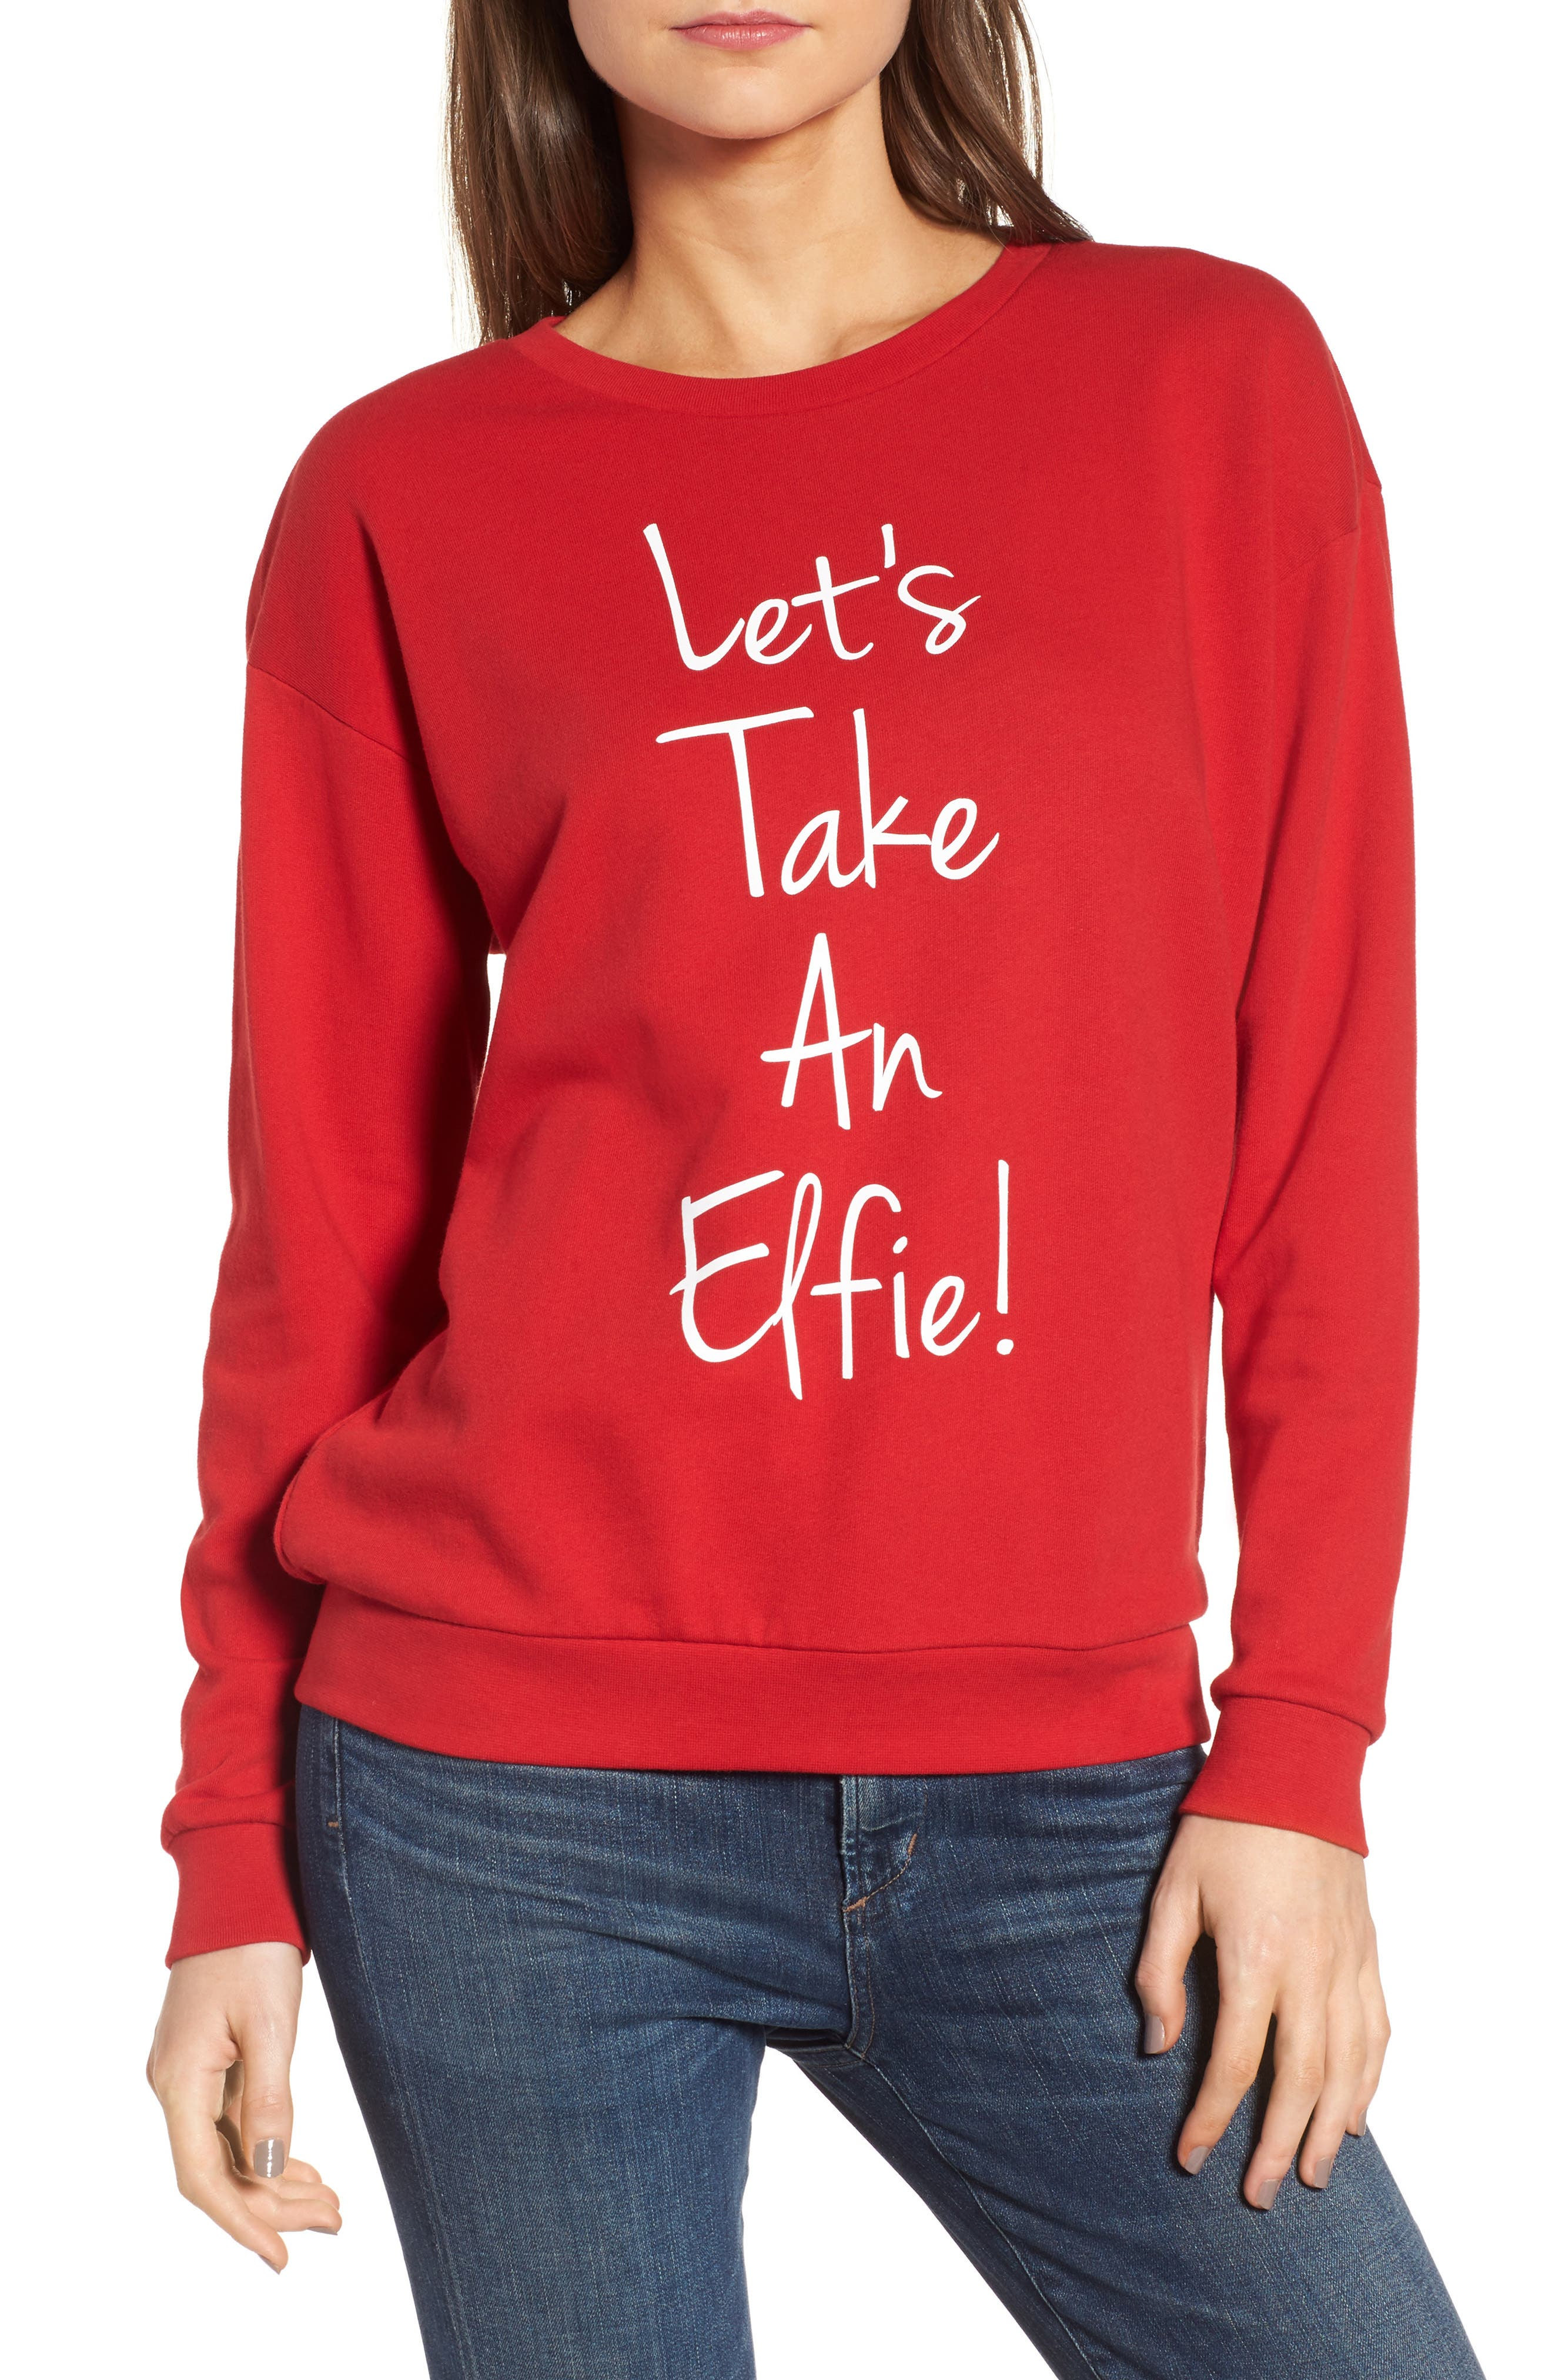 Let's Take an Elfie Sweatshirt,                             Main thumbnail 1, color,                             Red